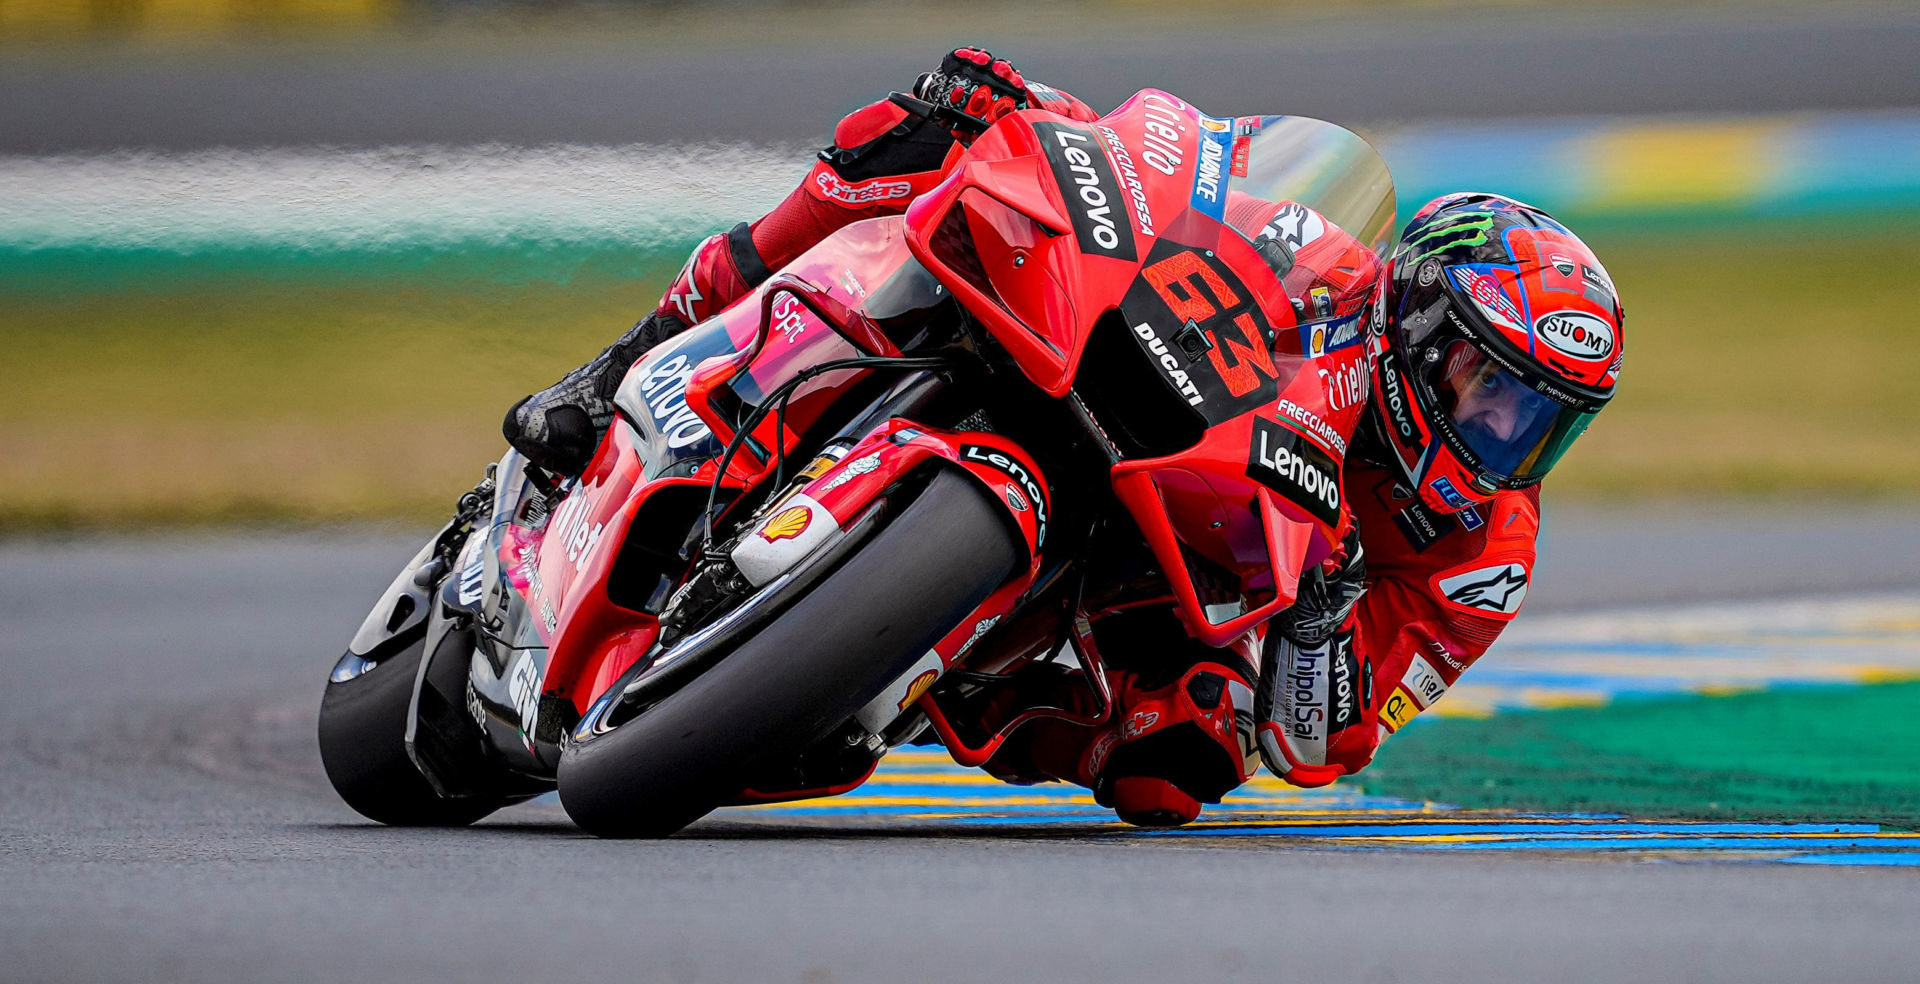 Motogp Bagnaia Quickest Top 16 Covered By 1 0 Second In Fp2 Updated Roadracing World Magazine Motorcycle Riding Racing Tech News